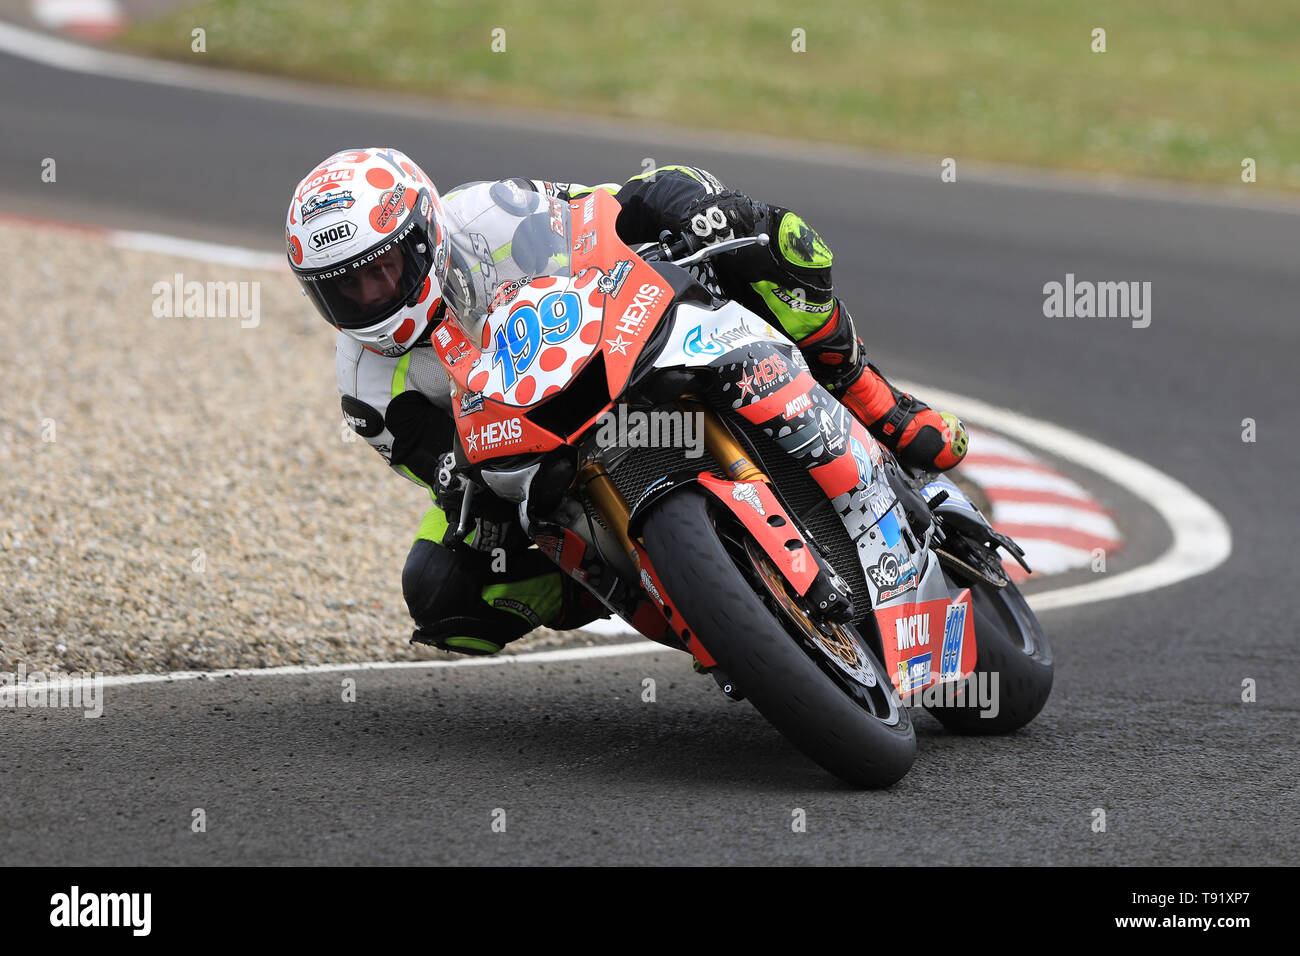 Portrush, Northern Ireland. 16th May, 2019. International North West 200 Motorcycle road racing, Thursday practice and evening racing; France's Pierre Yves Bian on the Optimark Road Racing Team Yamaha during the SuperSport qualifying session Credit: Action Plus Sports/Alamy Live News - Stock Image